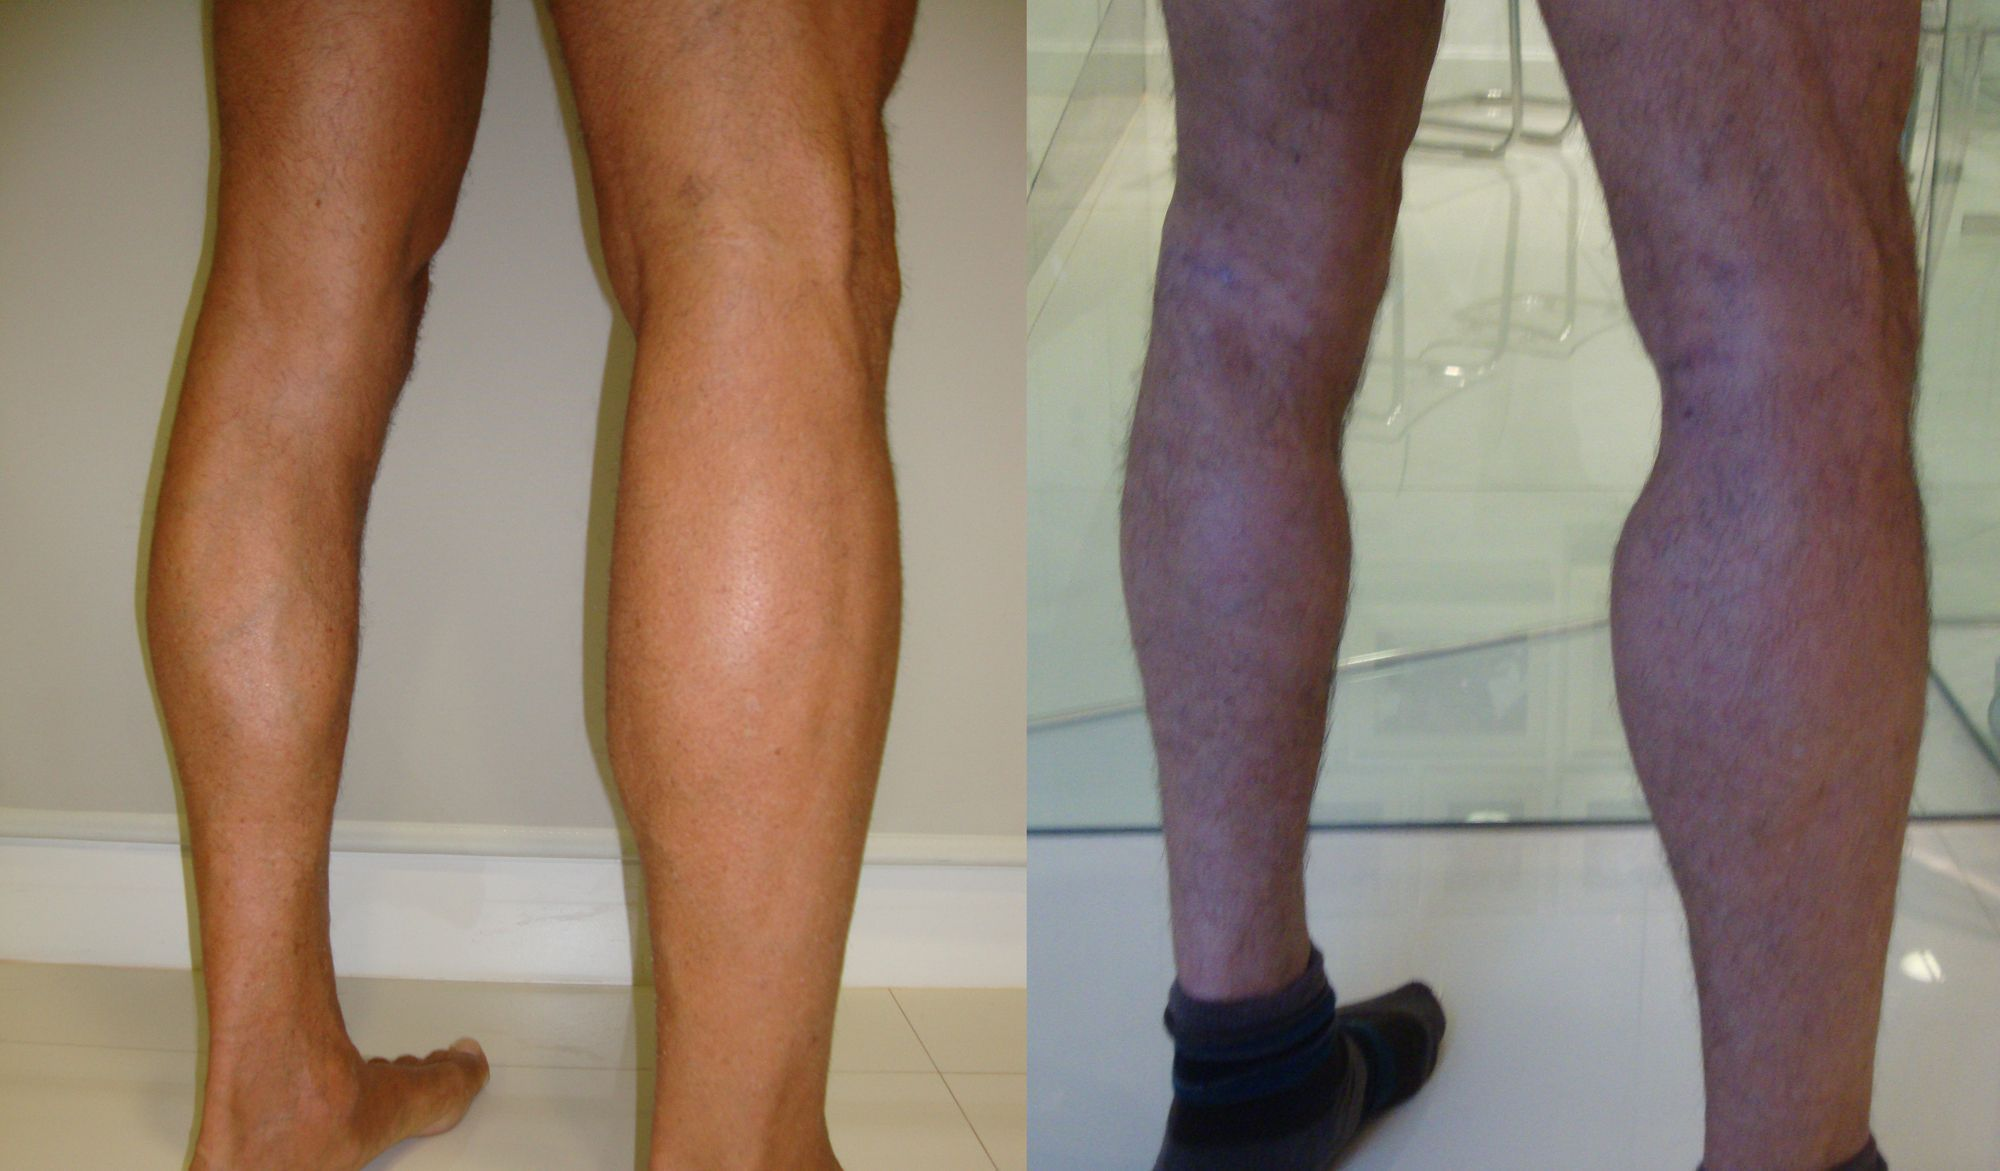 Calf muscle implants - Picture 4